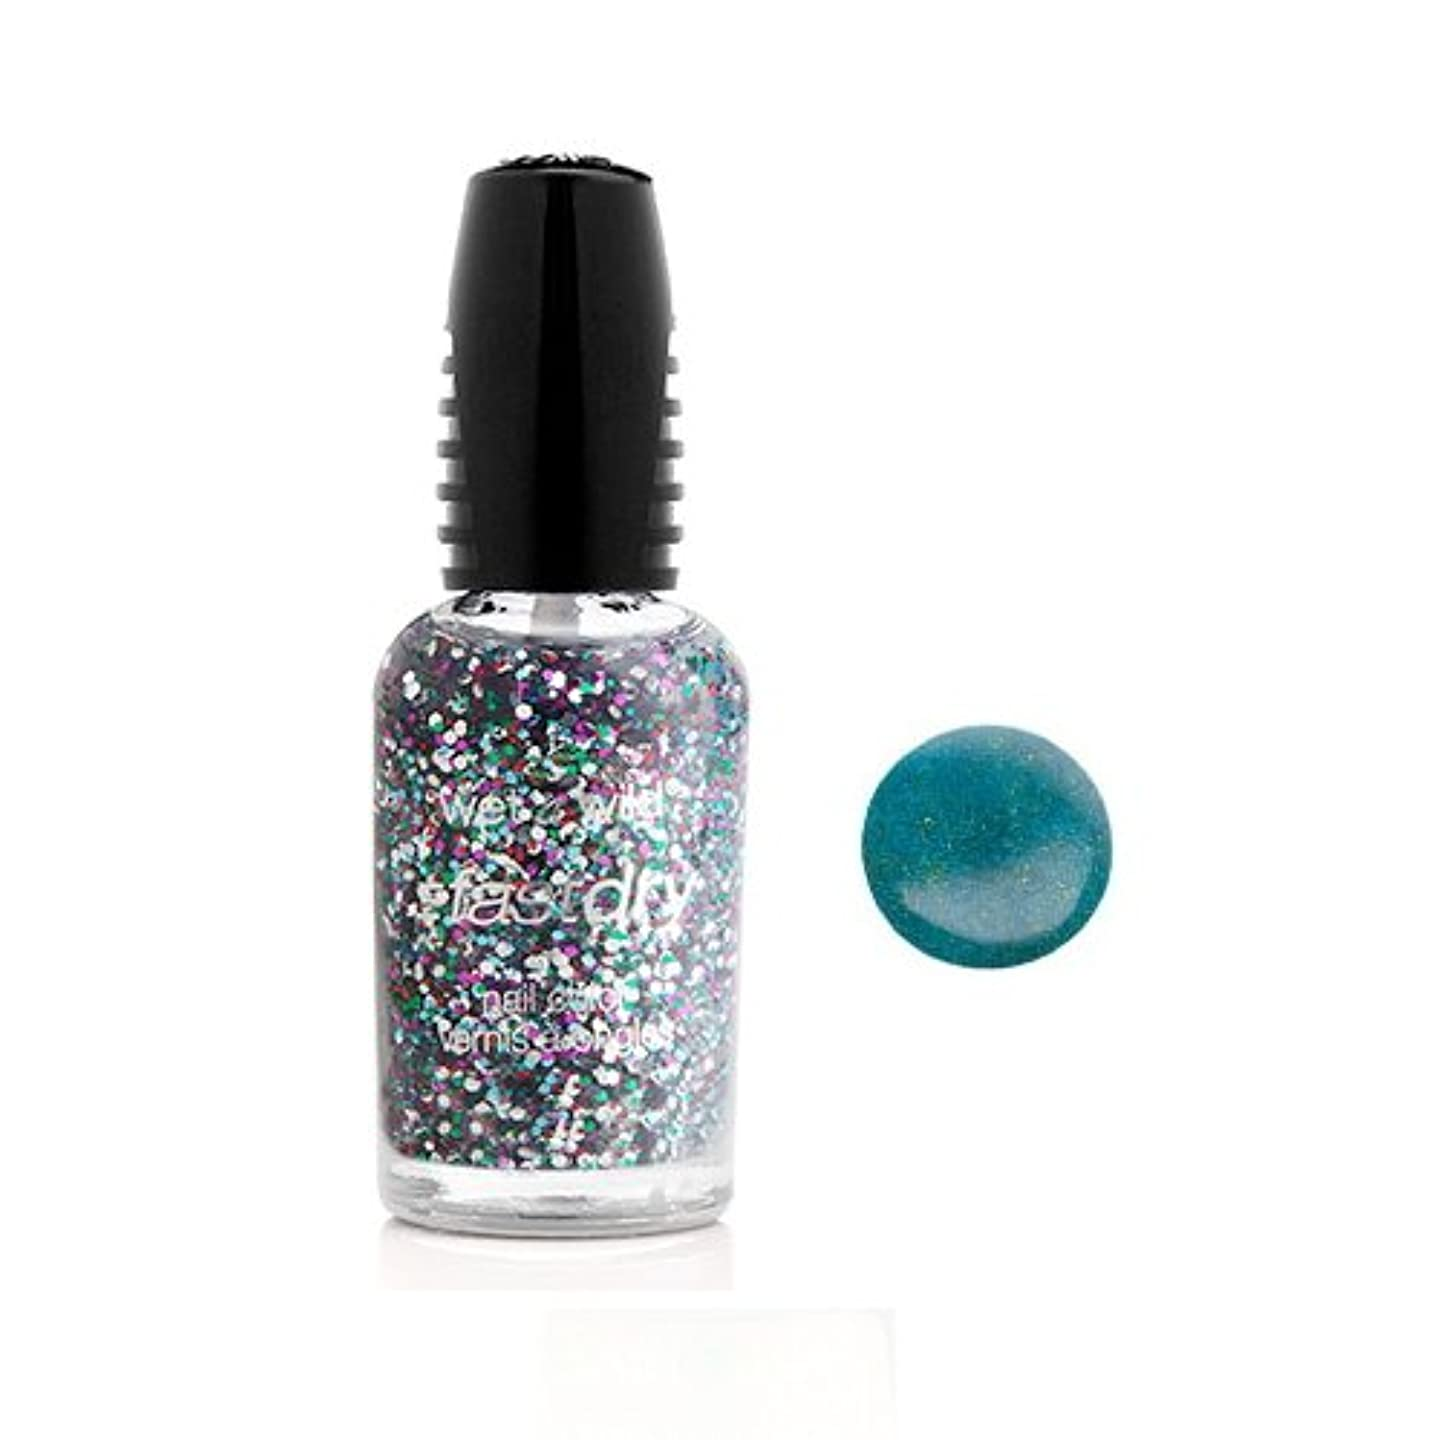 WET N WILD Fastdry Nail Color - Teal of Fortune (並行輸入品)